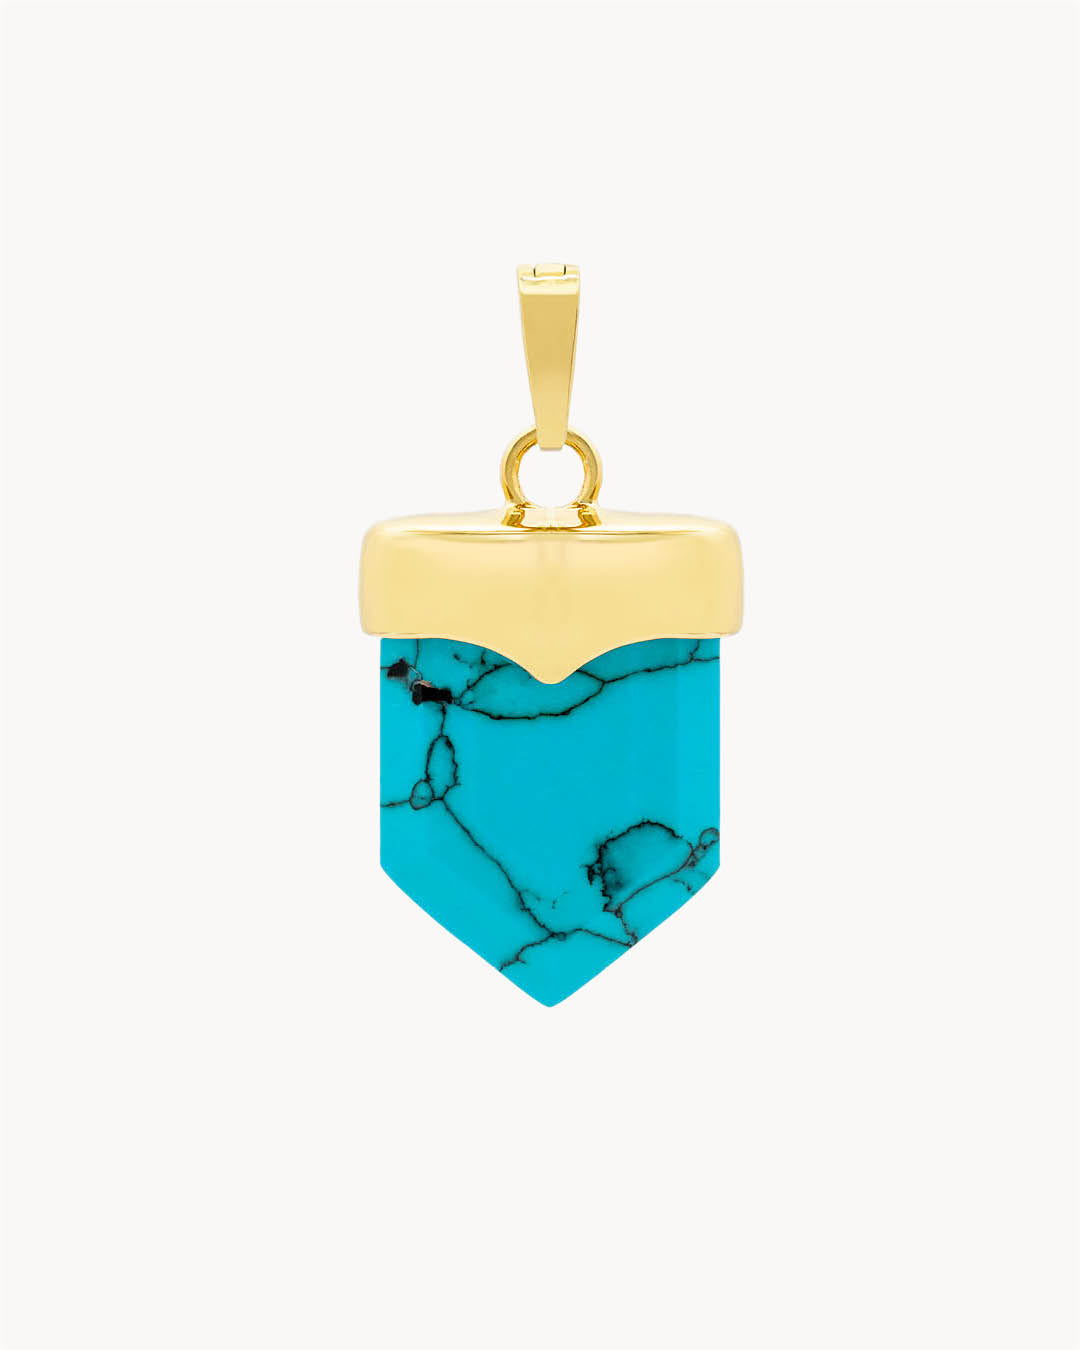 Pendentif Bouclier Howlite Turquoise Pierre Serenity, Or